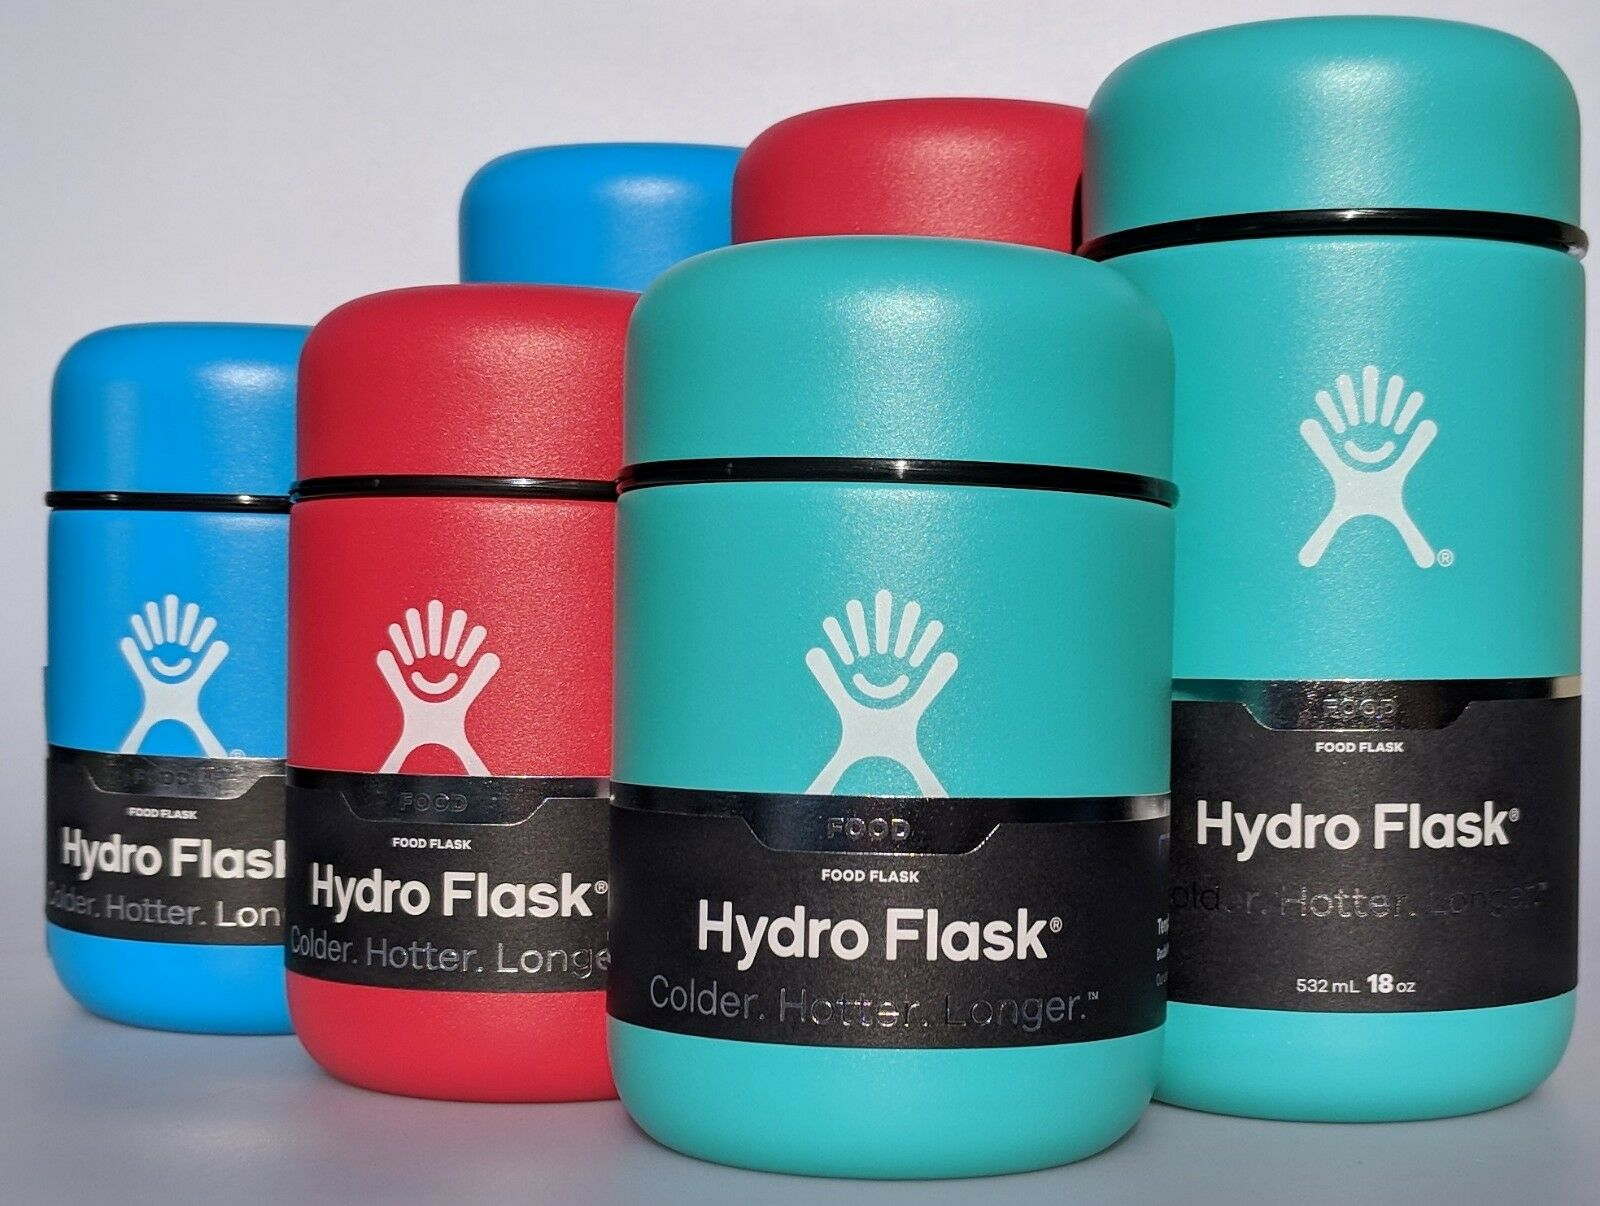 Hydro Flask Stainless Steel Food Flask Container 12oz 18oz